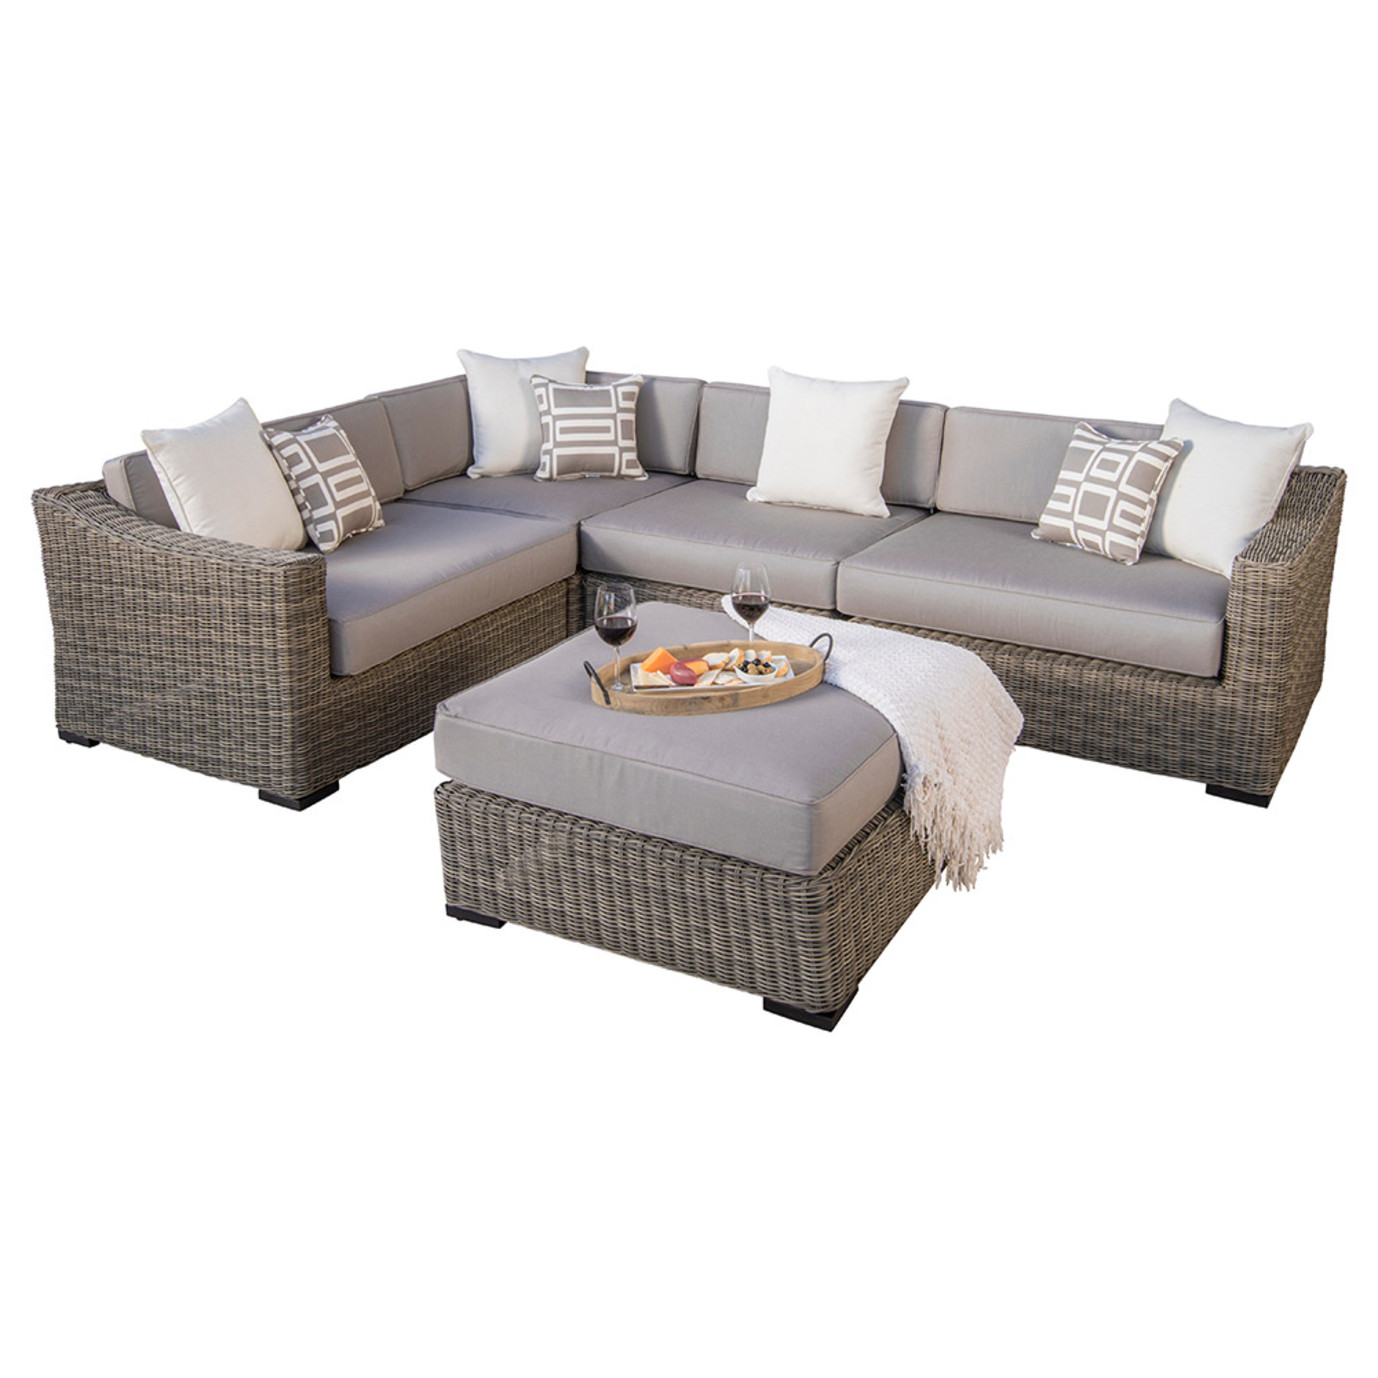 Resort™ 5pc Sectional & Ottoman Set - Weathered Grey/Frank Stone